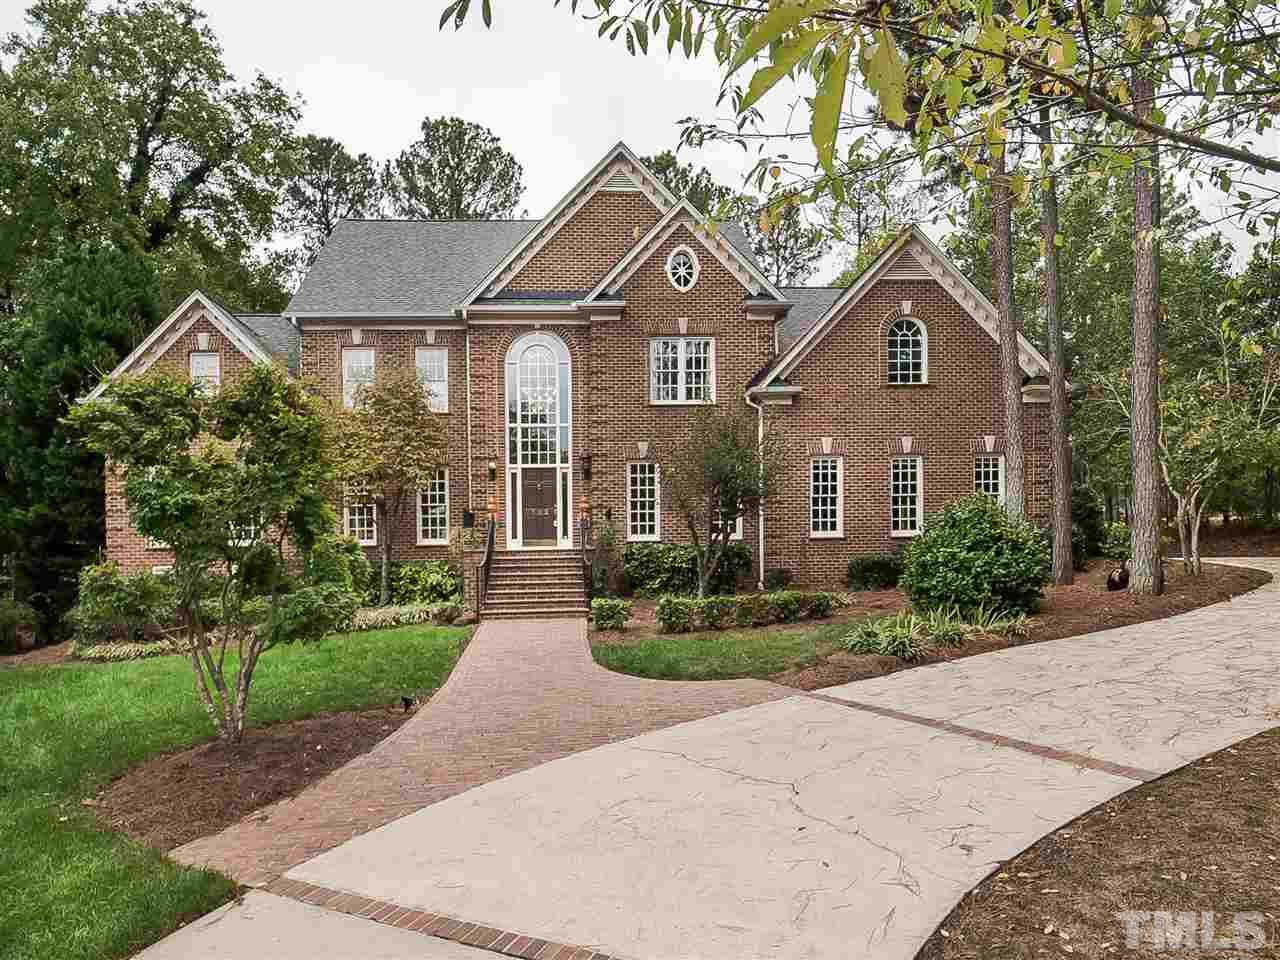 $999,999 - 4Br/5Ba -  for Sale in Preston, Cary